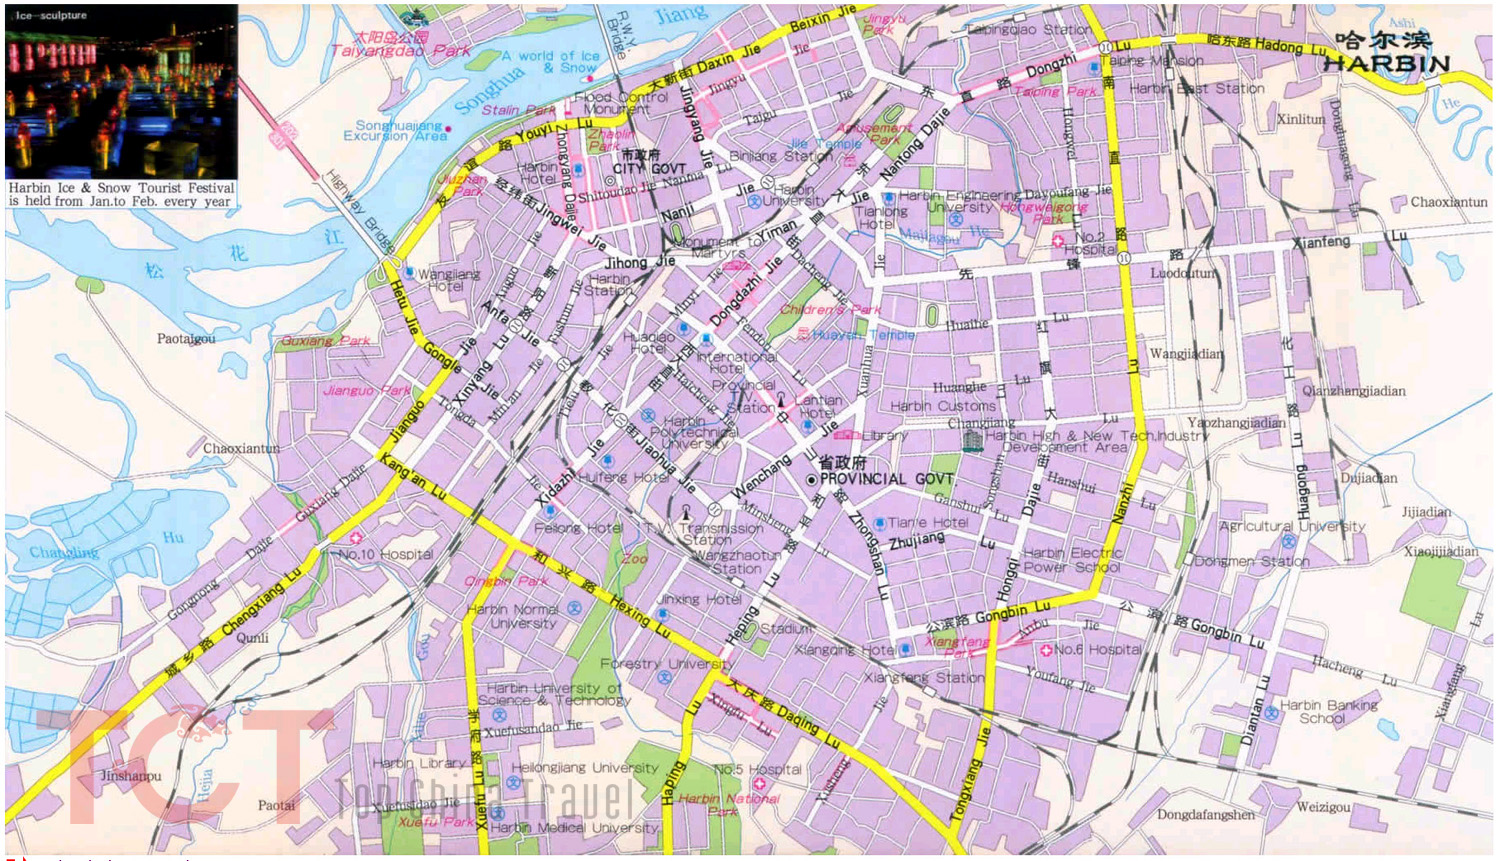 Harbin Maps Map of Harbin China Harbin Tourist mapsHarbin City Map